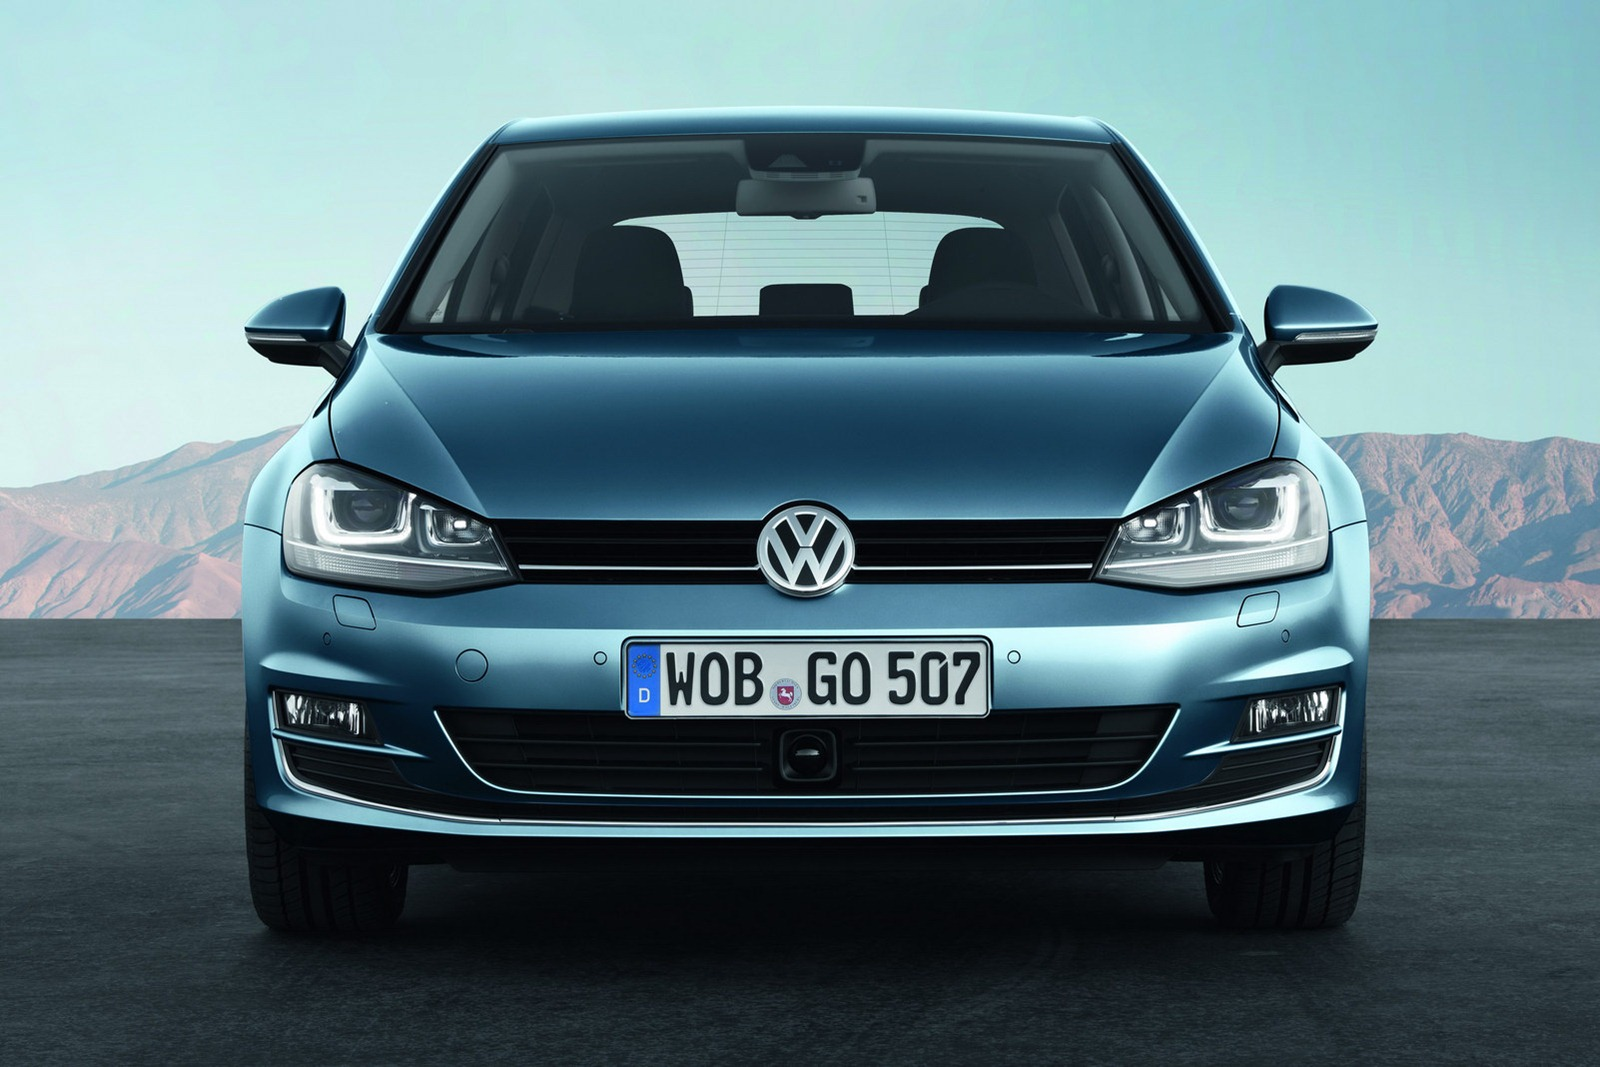 2013 Volkswagen Golf photo - 3